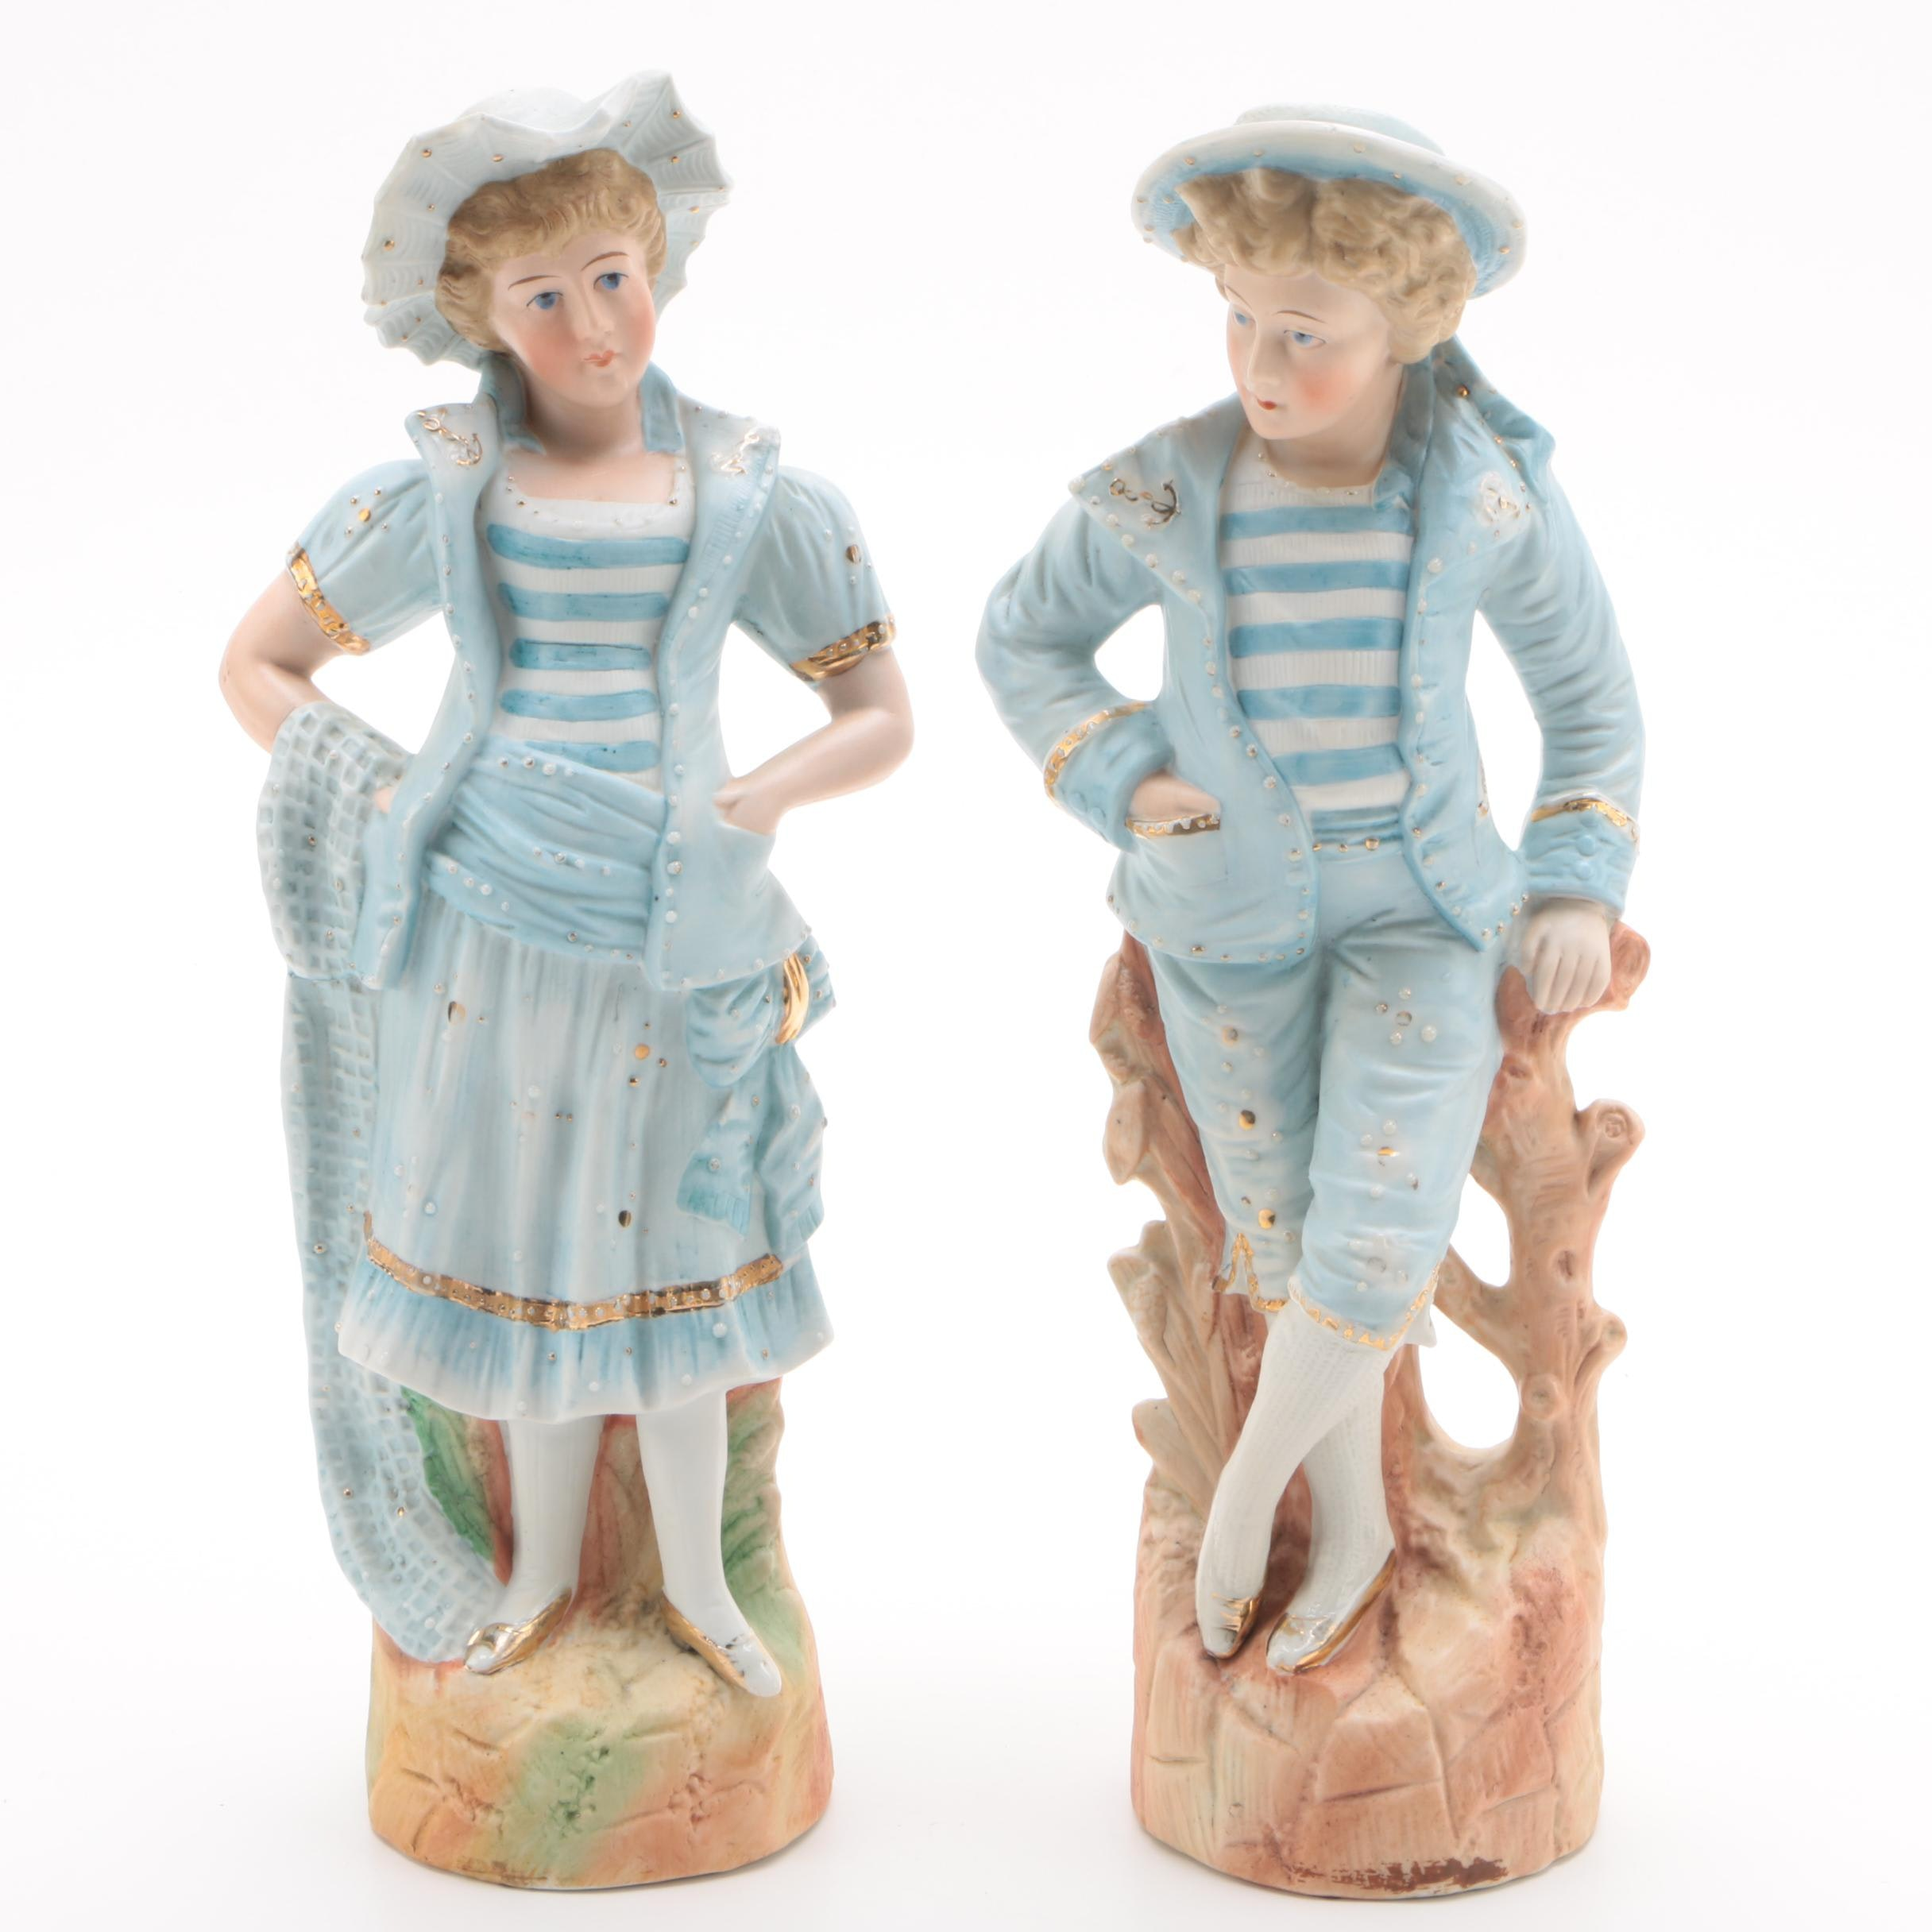 19th Century Style Porcelain Figurines